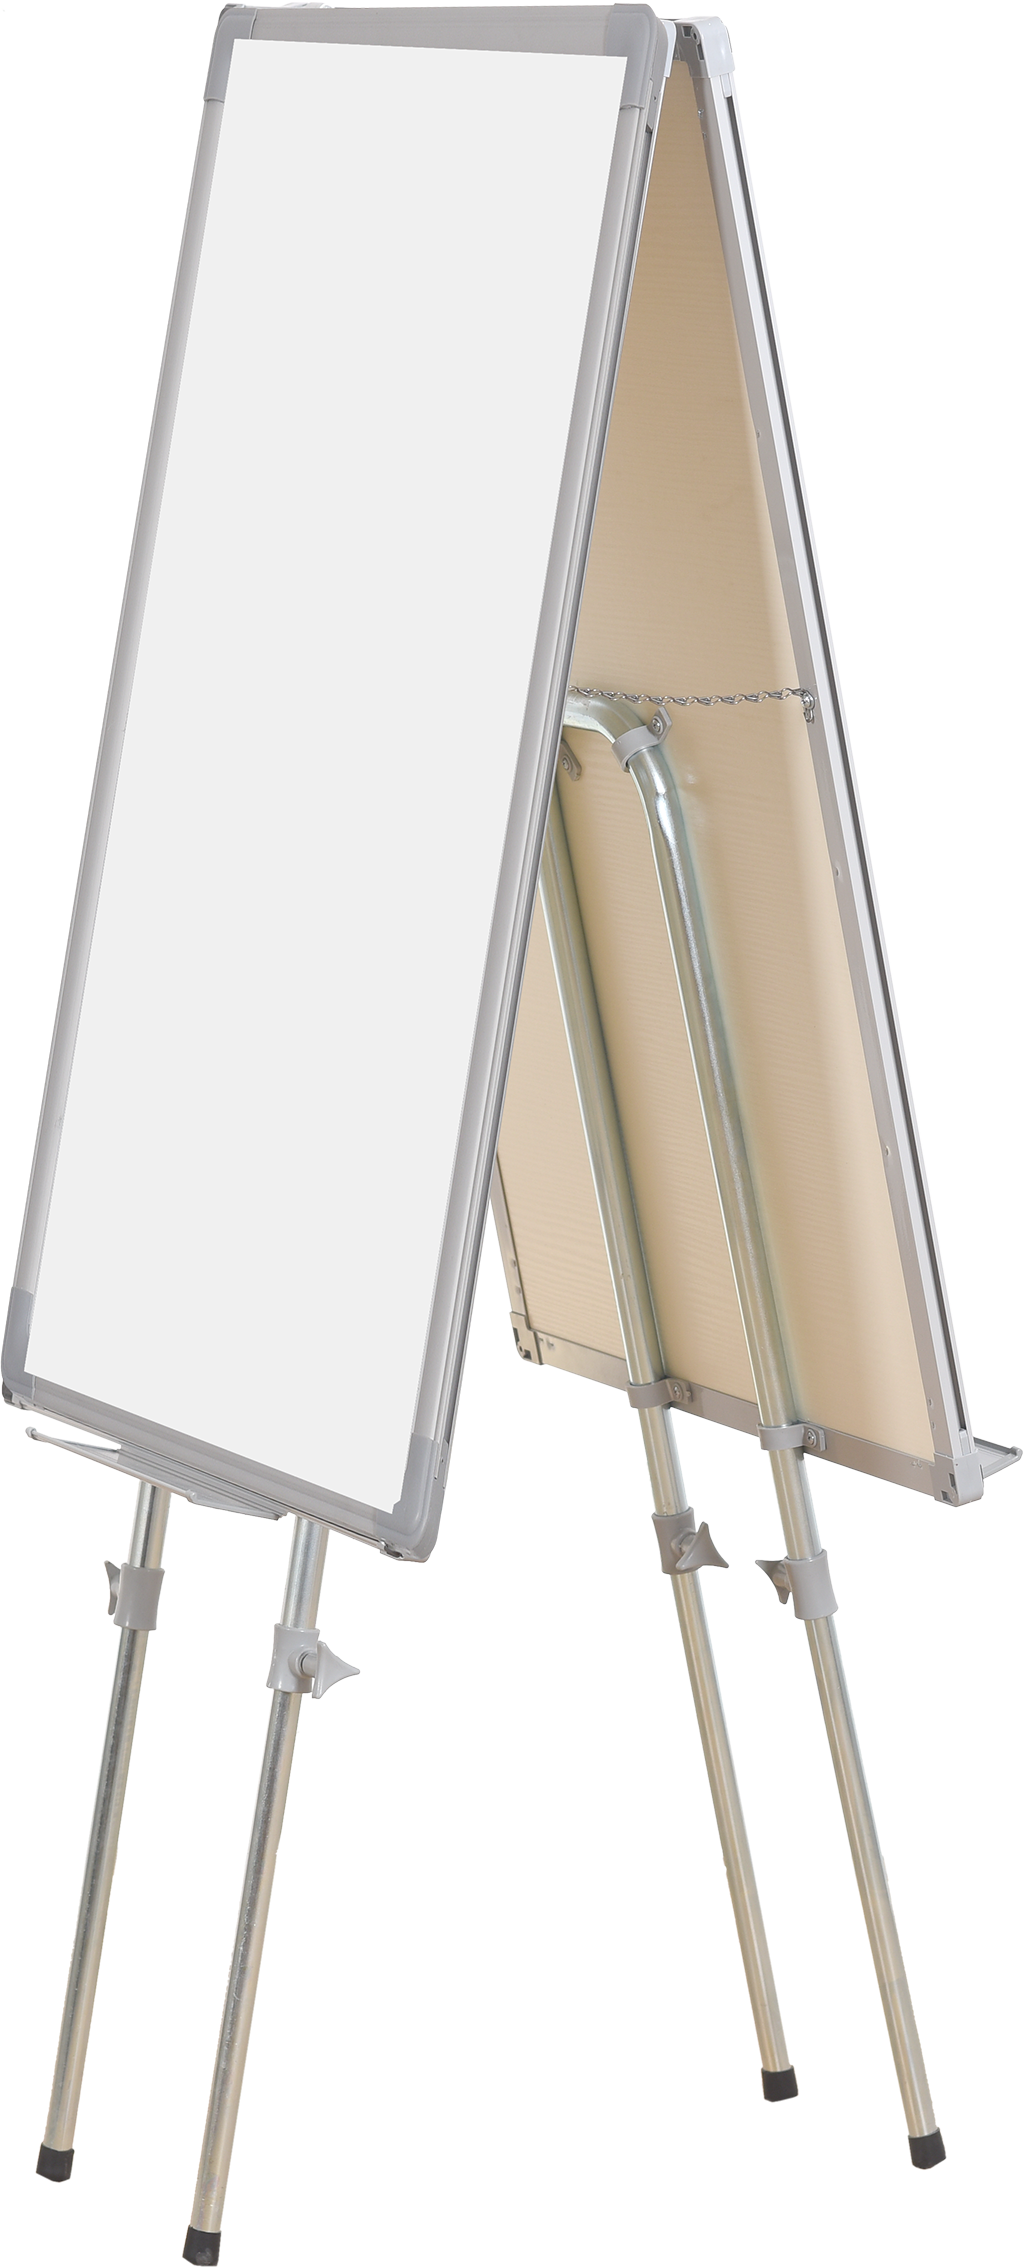 Laminate Surface Roof Type Writing Board